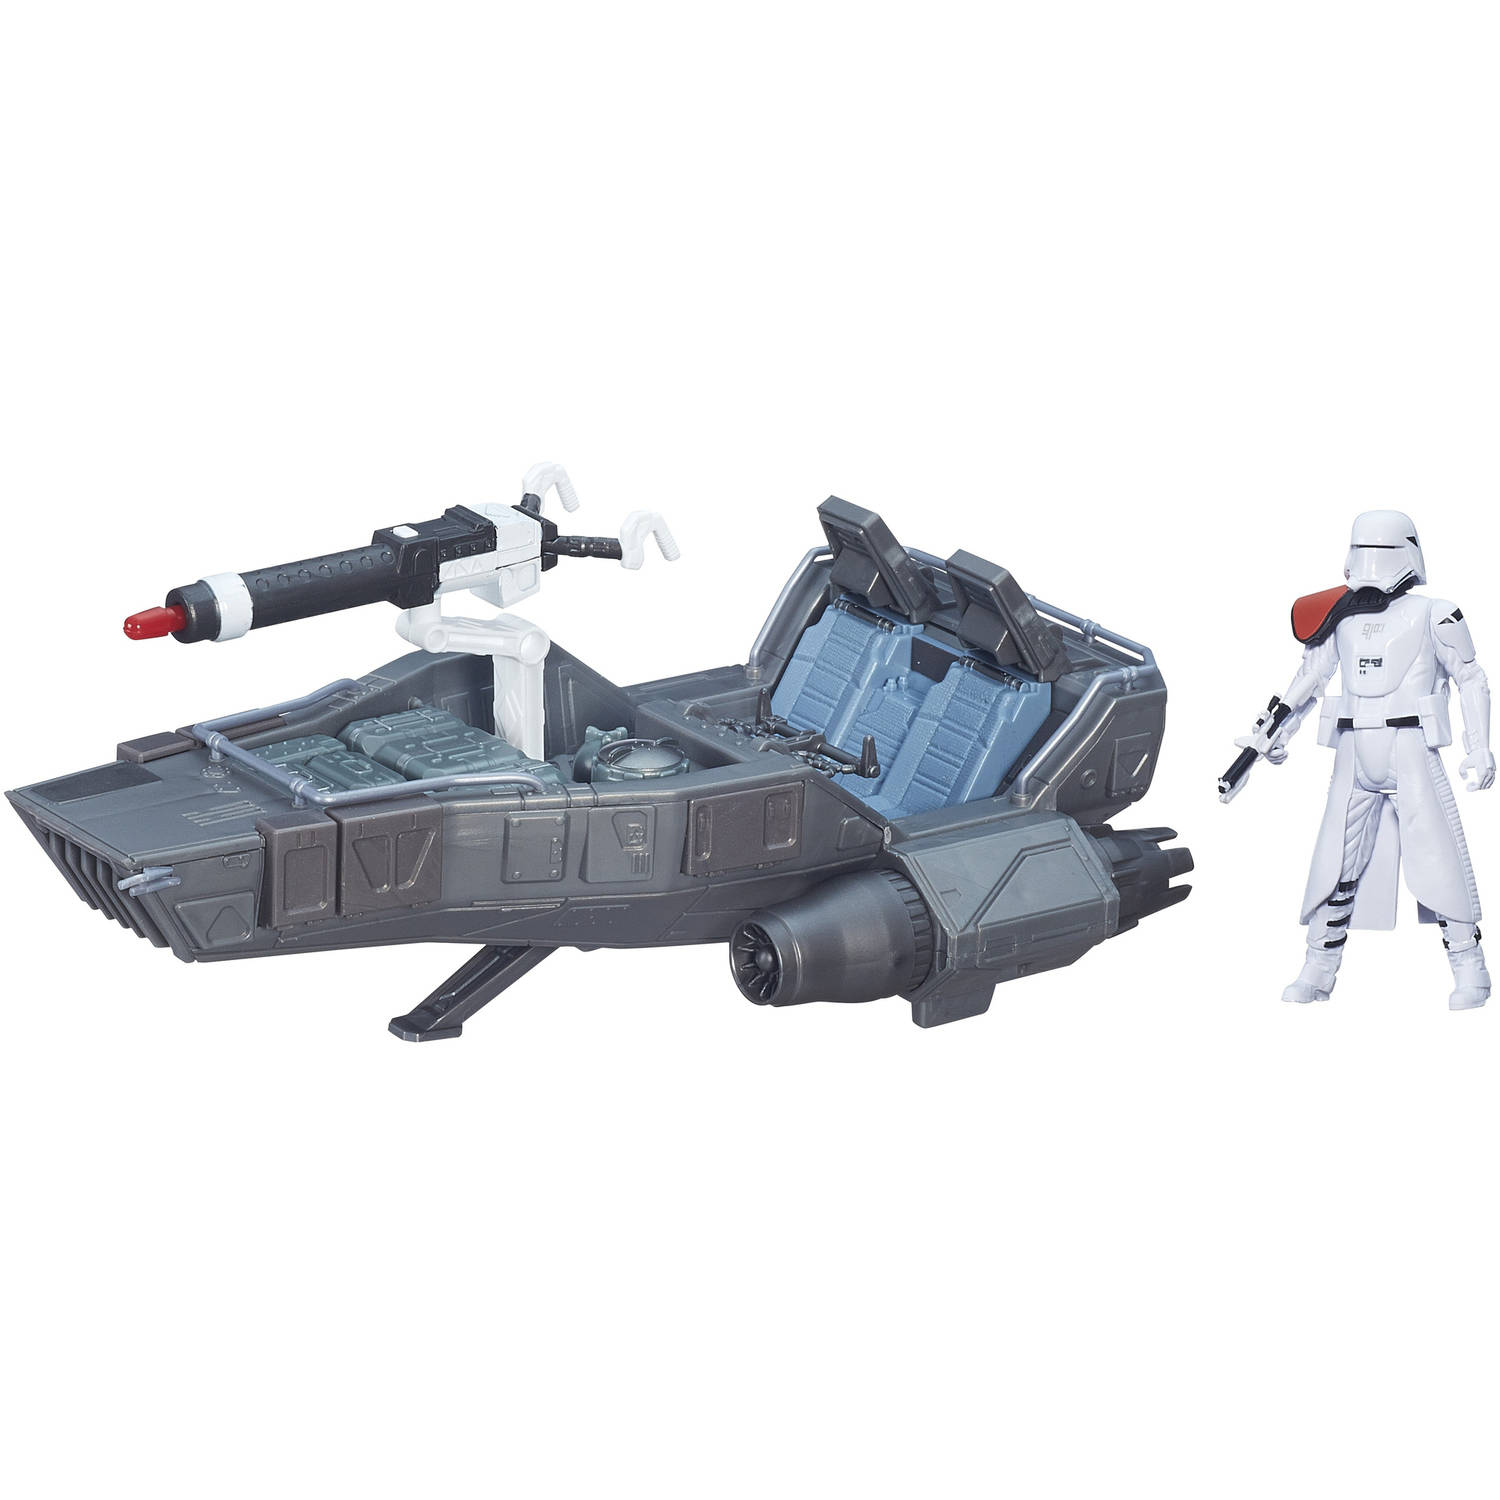 "Star Wars The Force Awakens 3.75"" Vehicle First Order Snowspeeder"